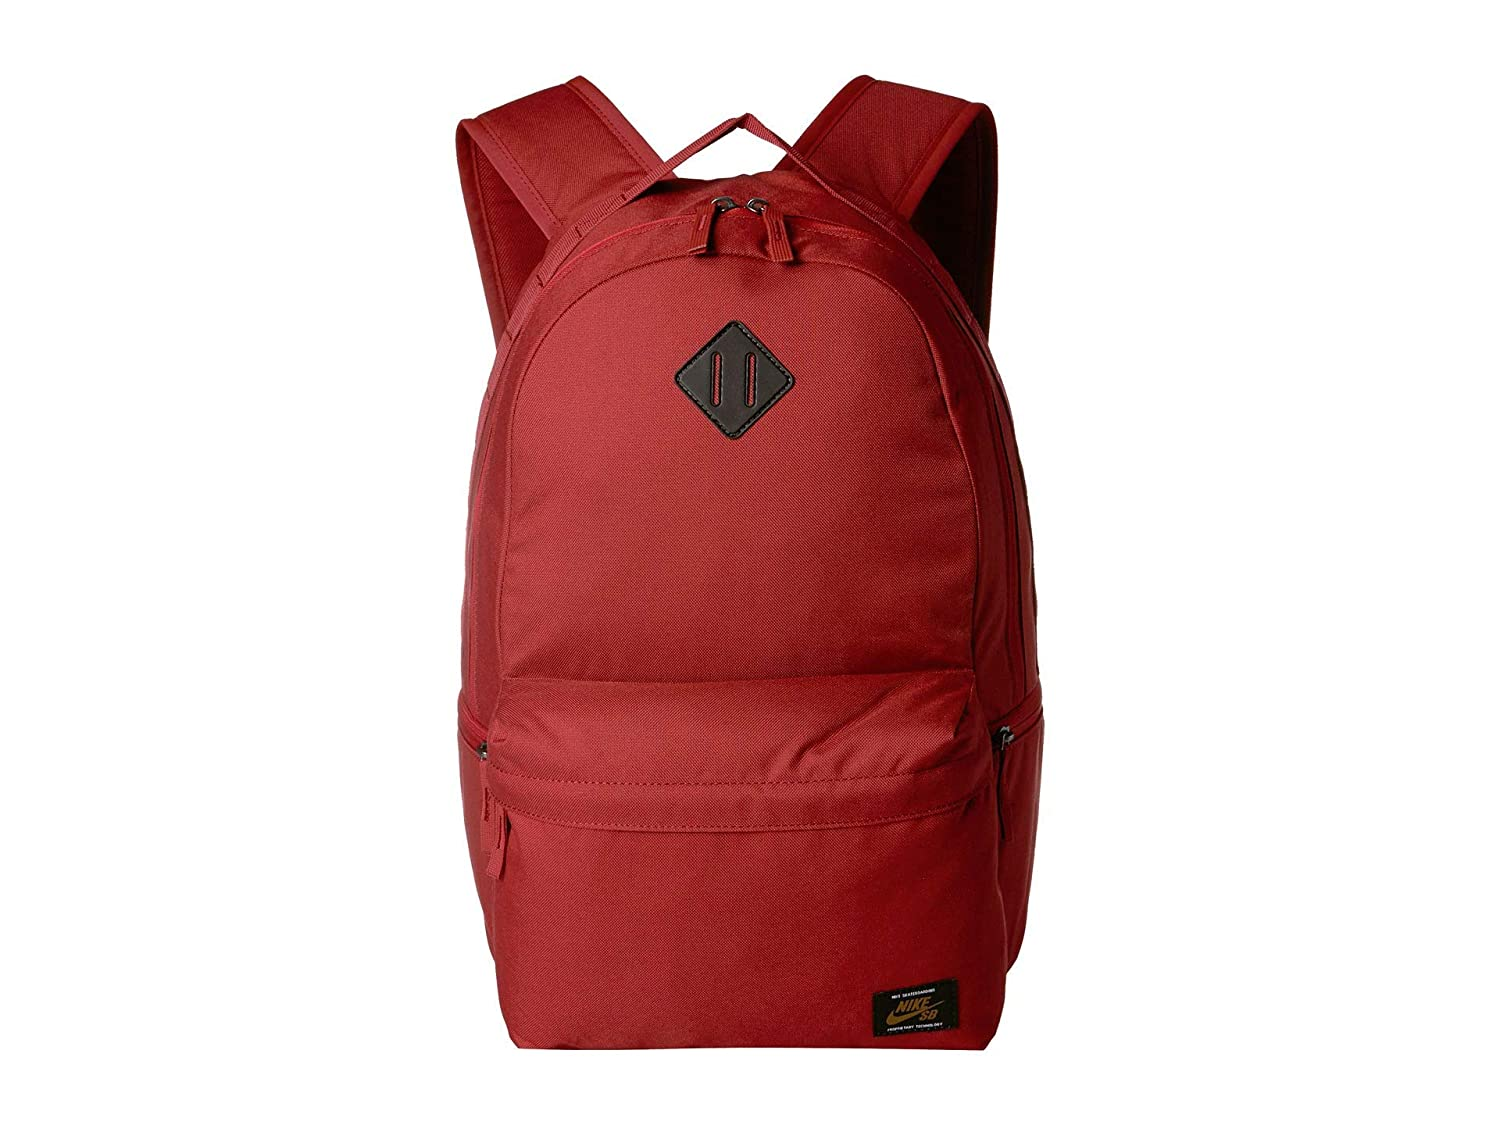 [NIKE(ナイキ)] リュックバックパック Icon Backpack [並行輸入品] One Size Team Crimson/Golden Beige/Golden Beige B07P8V8QTY